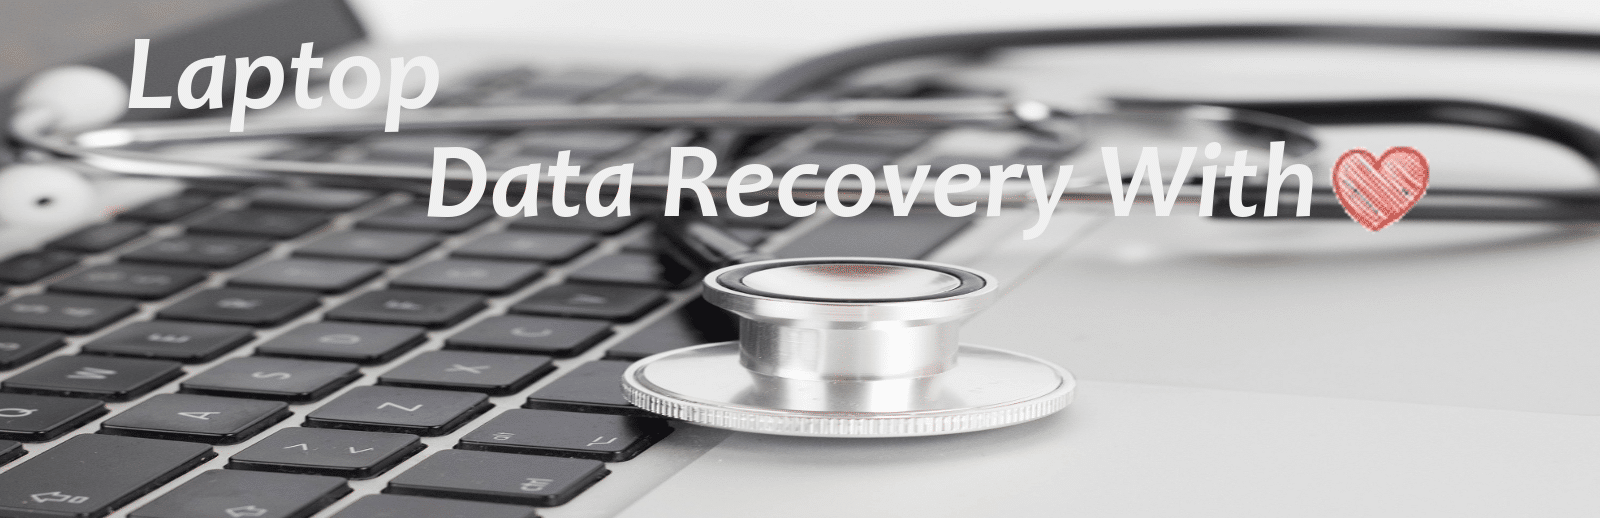 laptop data recover